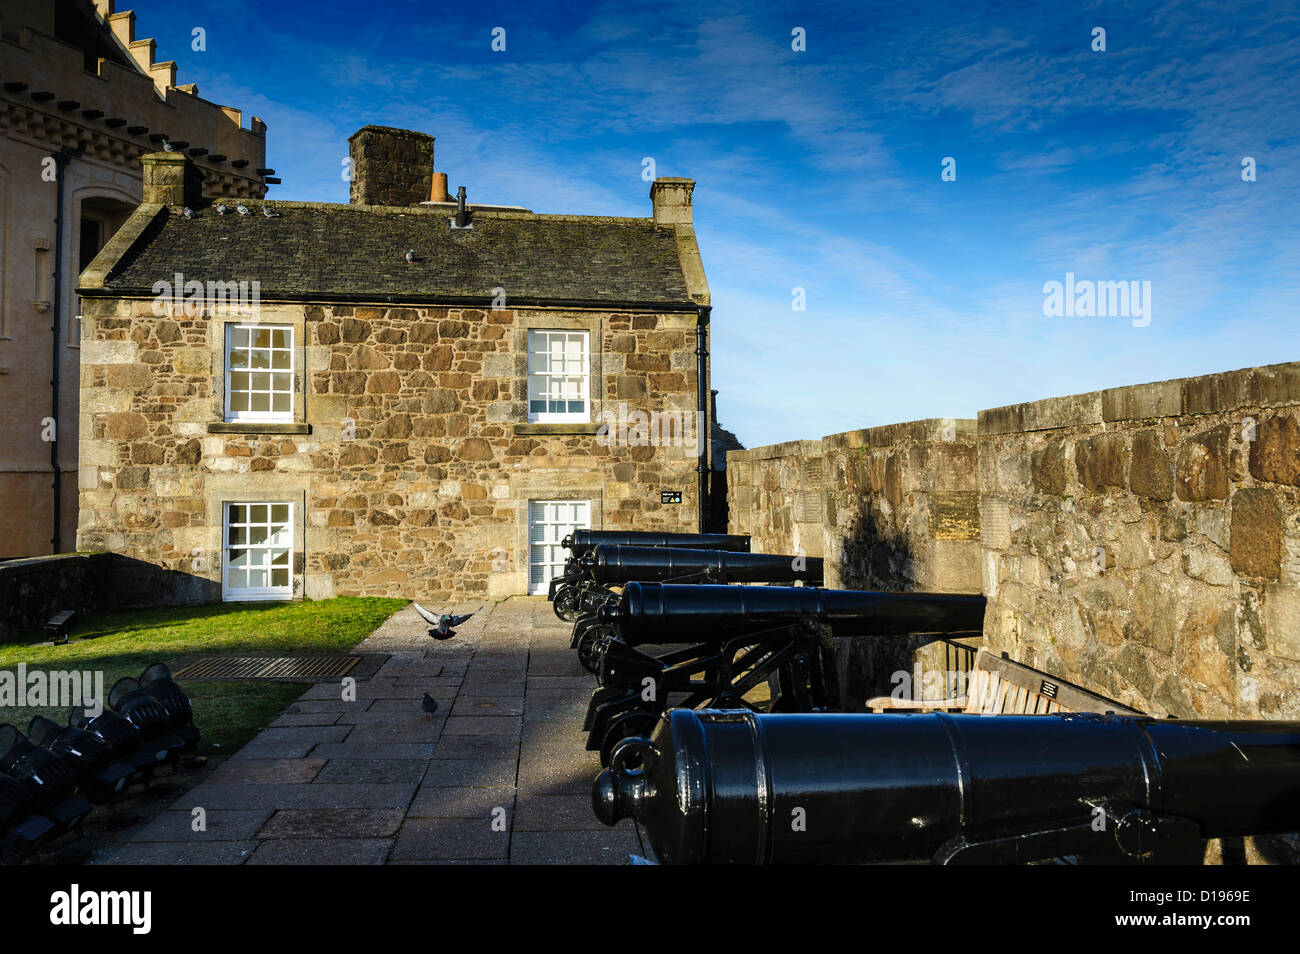 The Grand Battery at Stirling Castle, Scotland Stock Photo